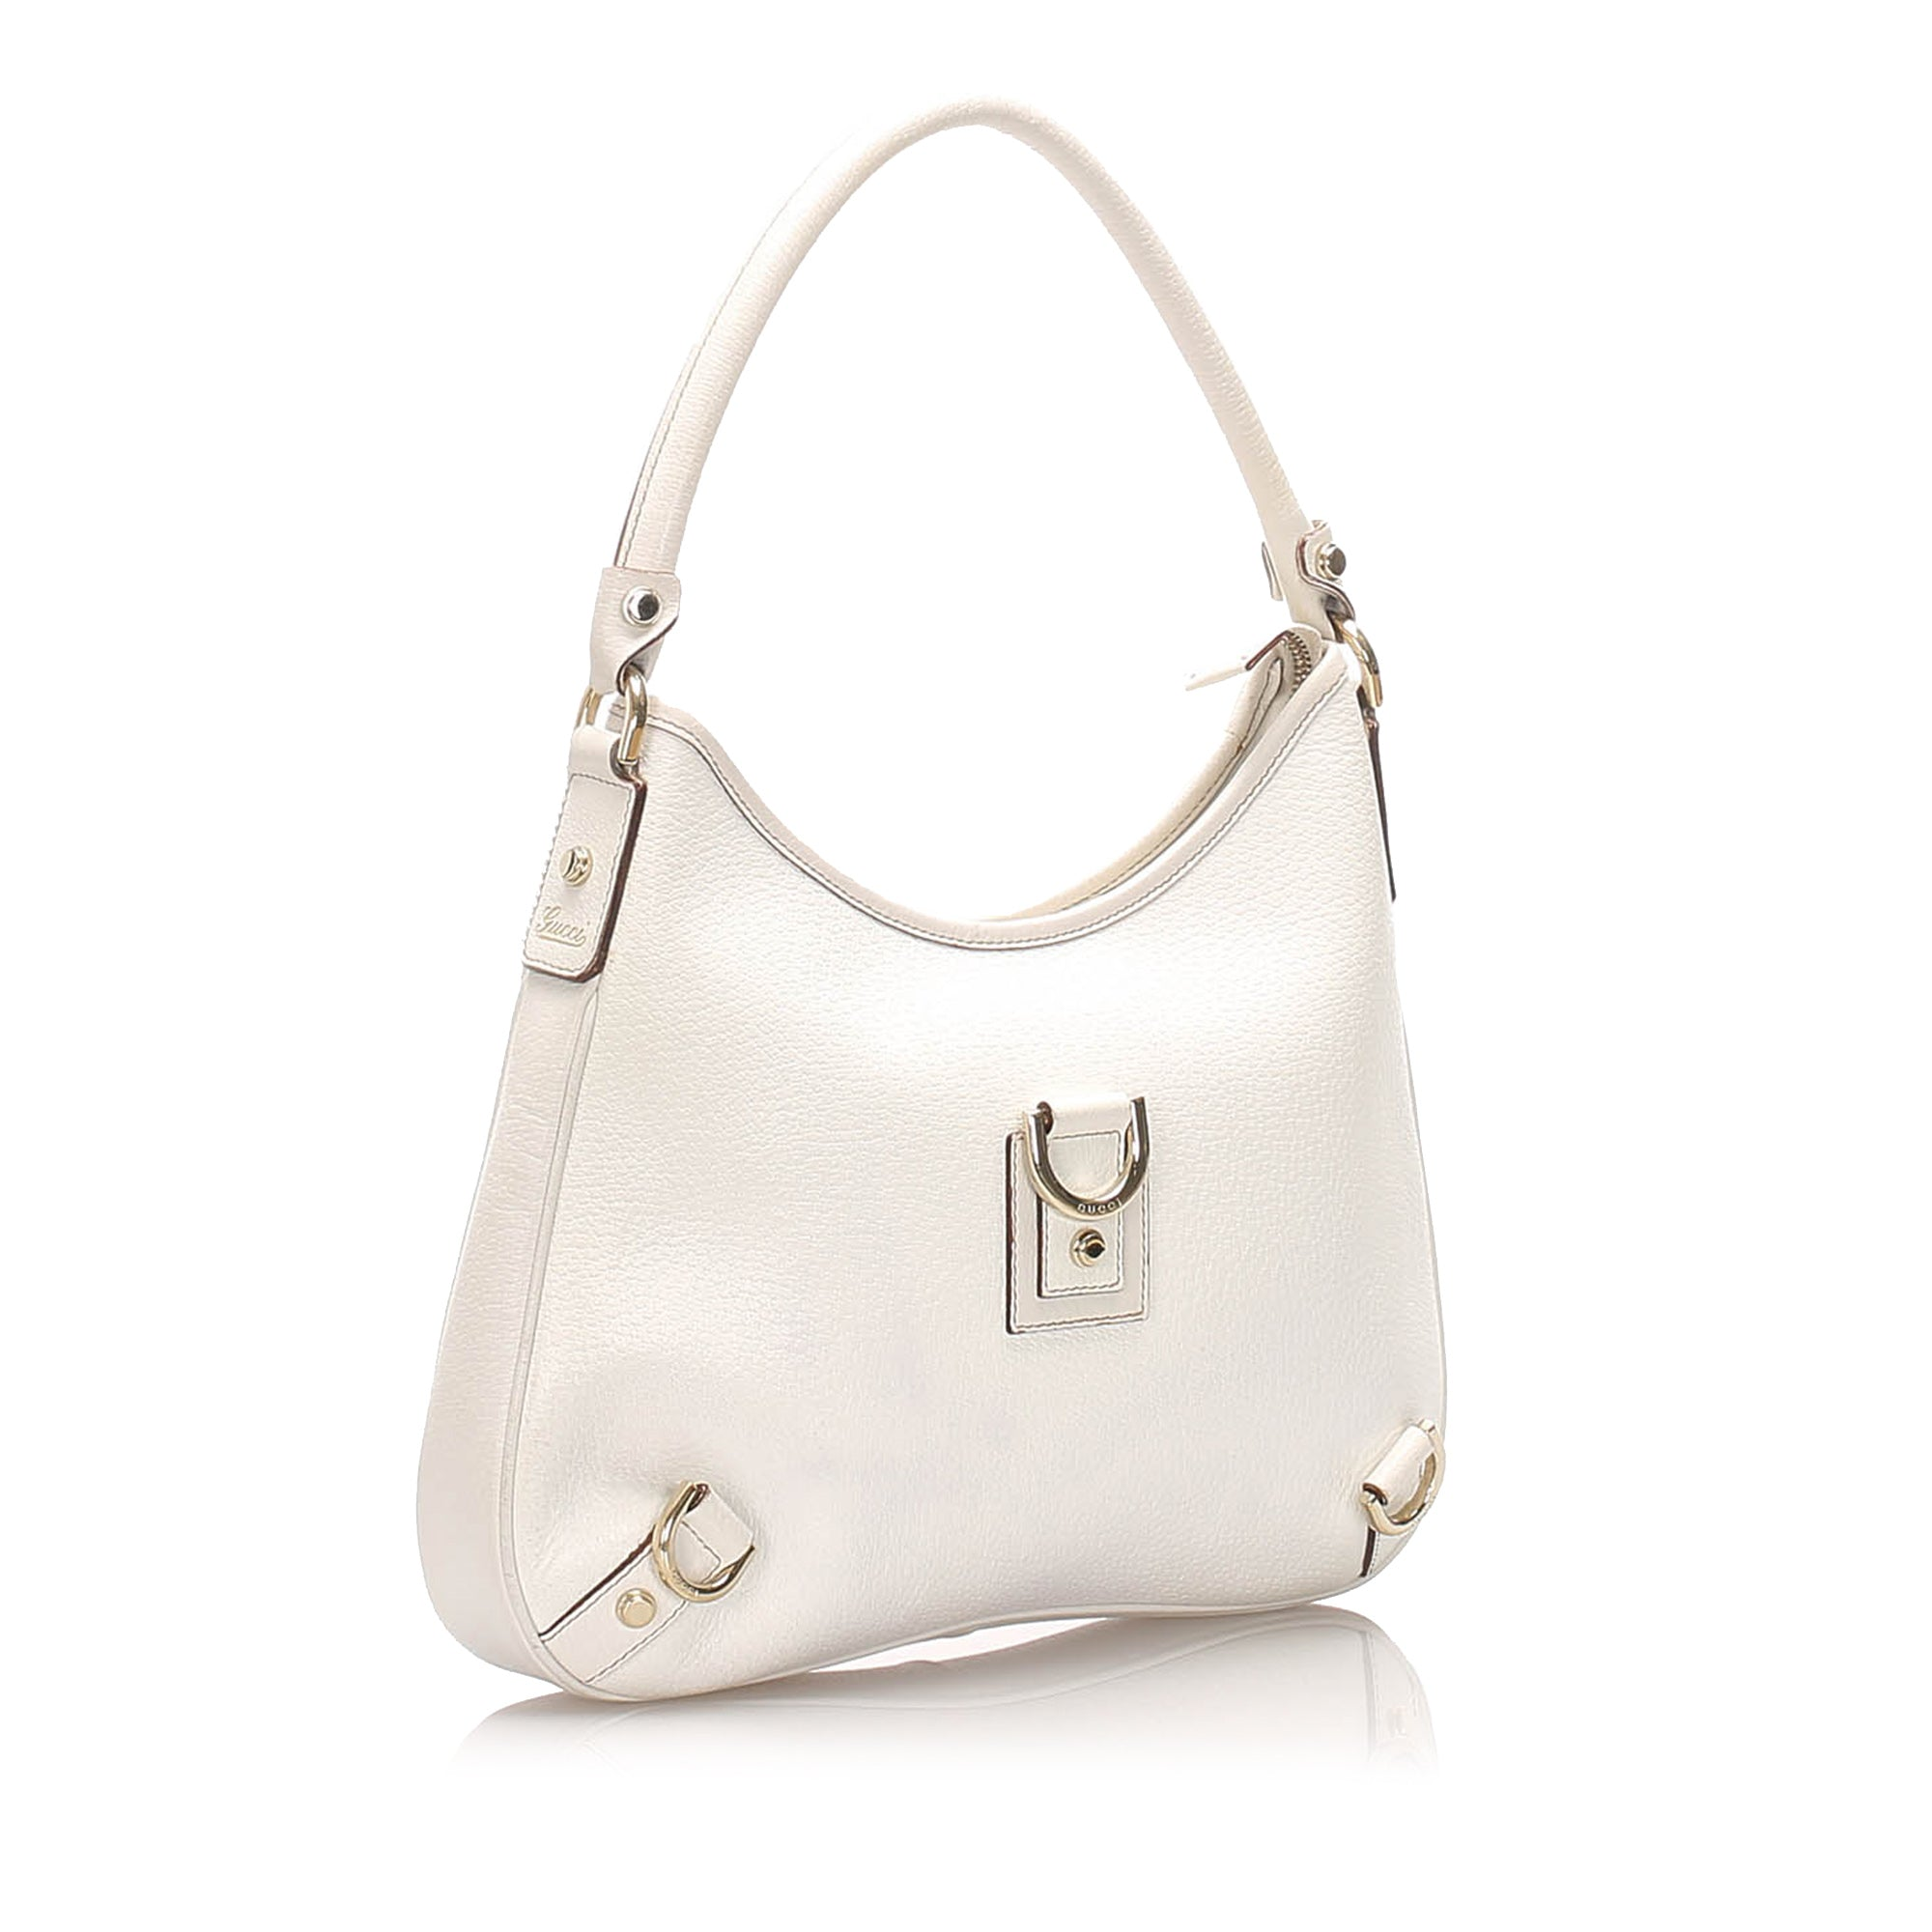 Gucci White Abbey Leather Shoulder Bag